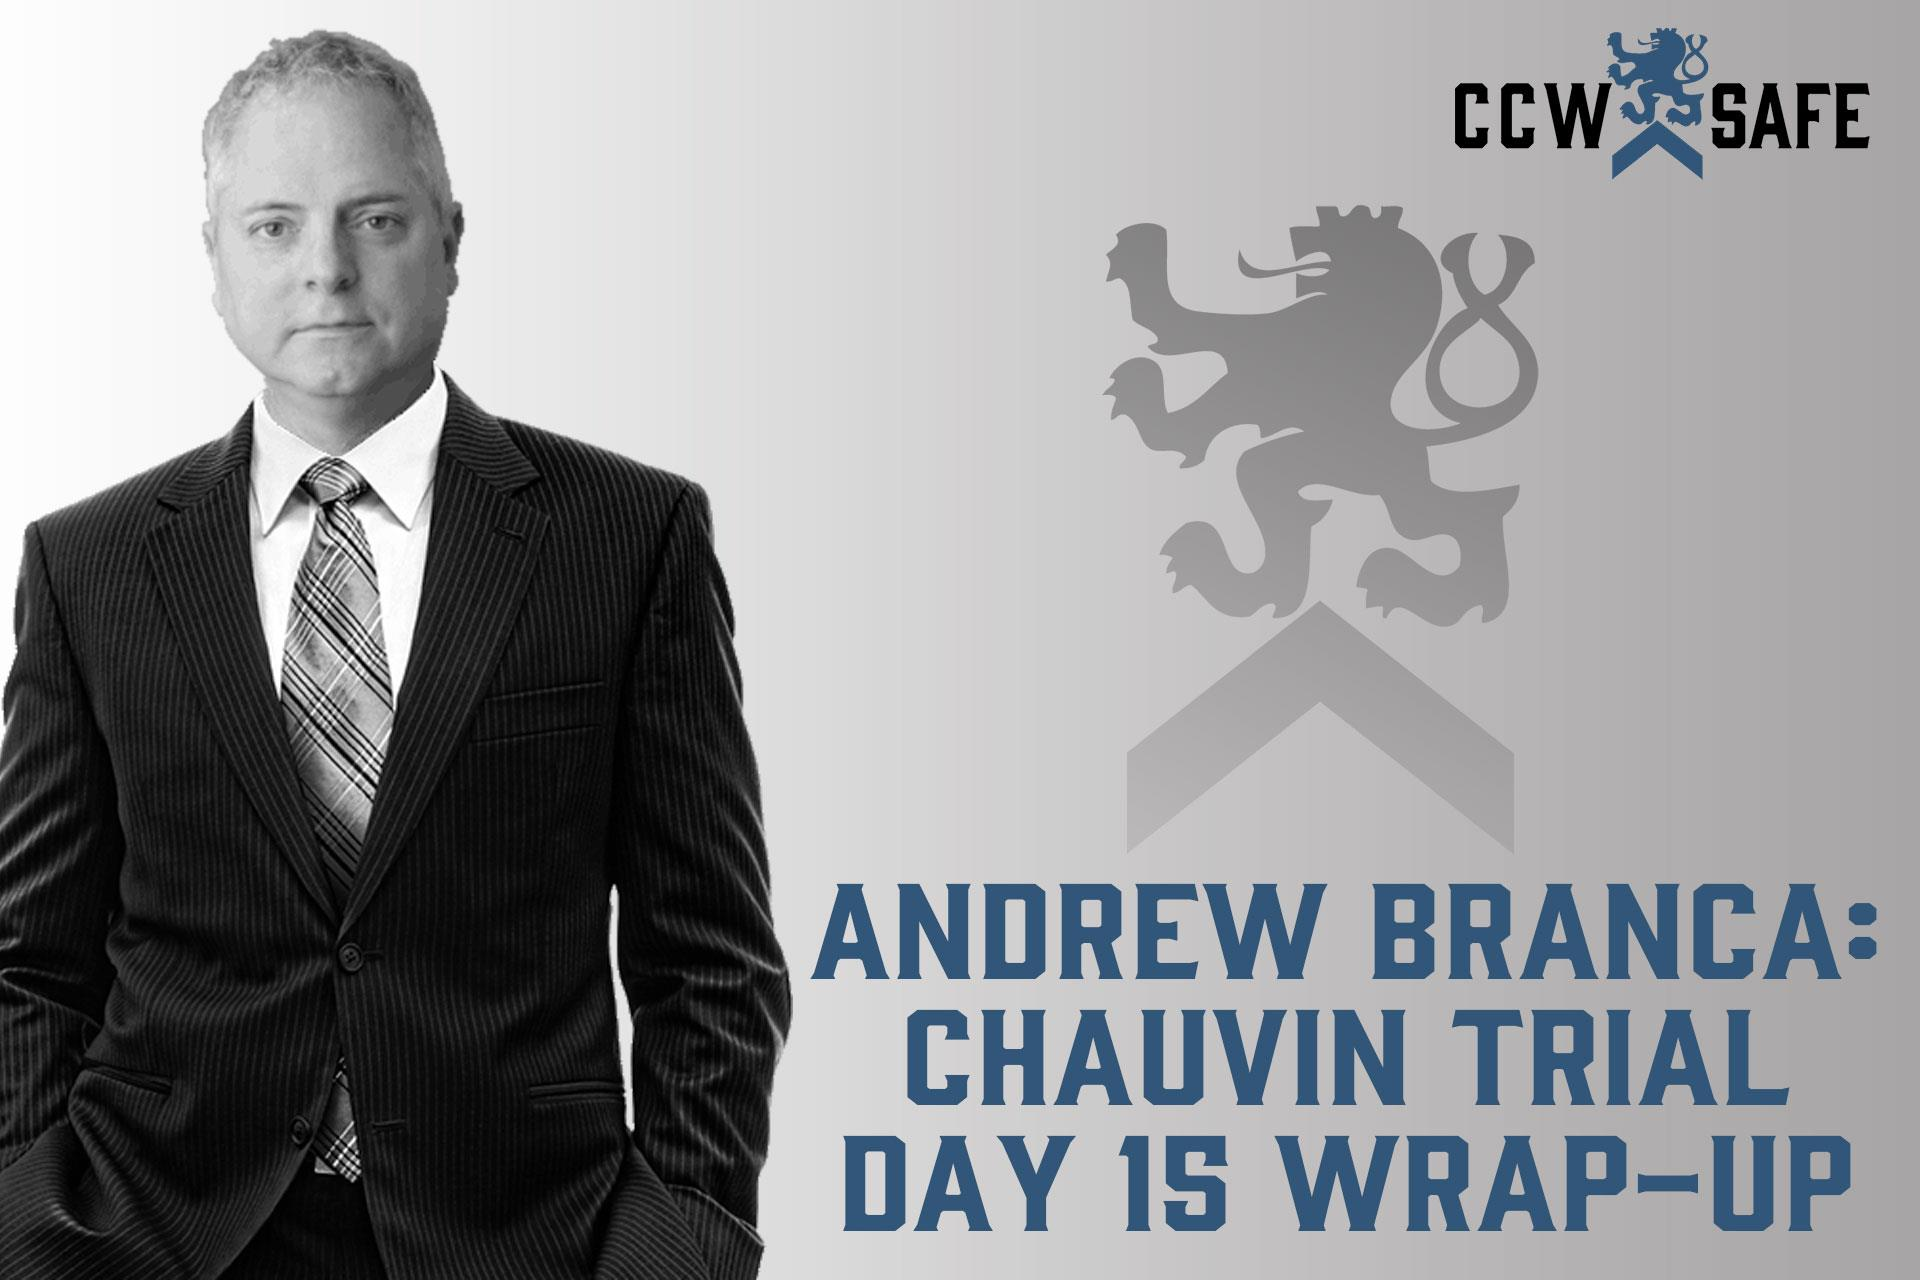 Andrew Branca: Chauvin Trial Day 15 Wrap-Up